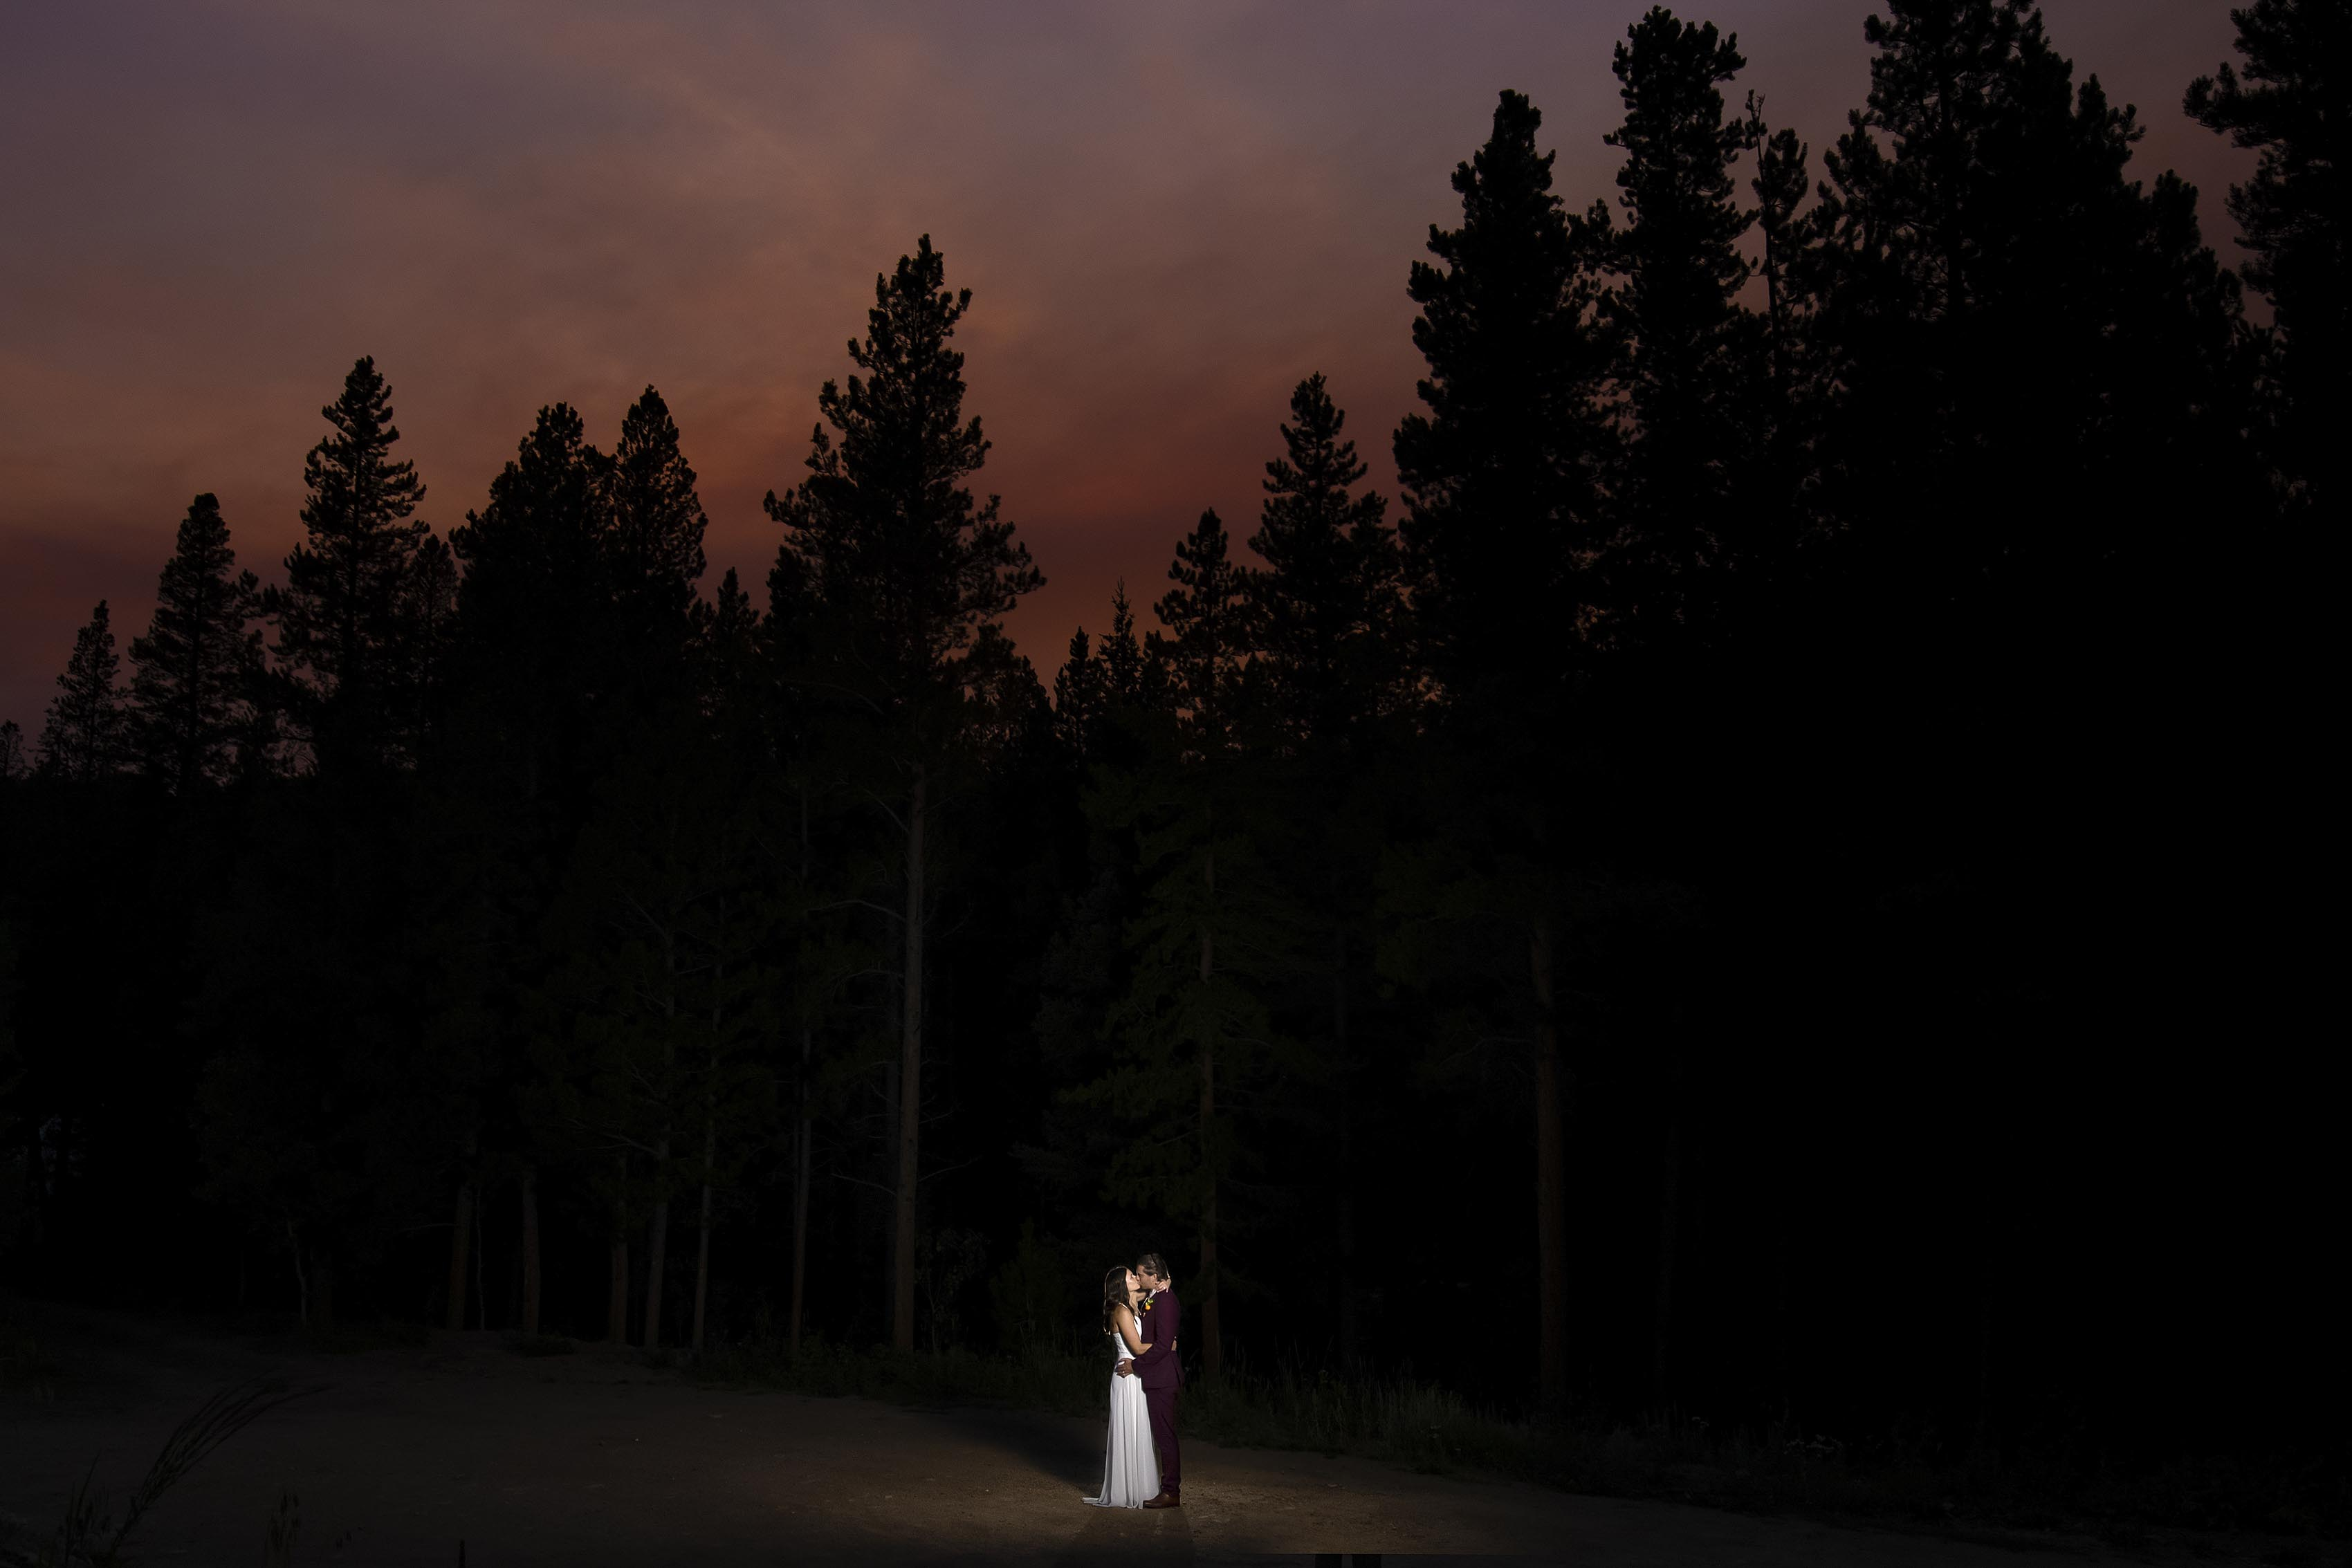 The newlyweds share a kiss under a smoky sunset following their elopement in Black Hawk, CO